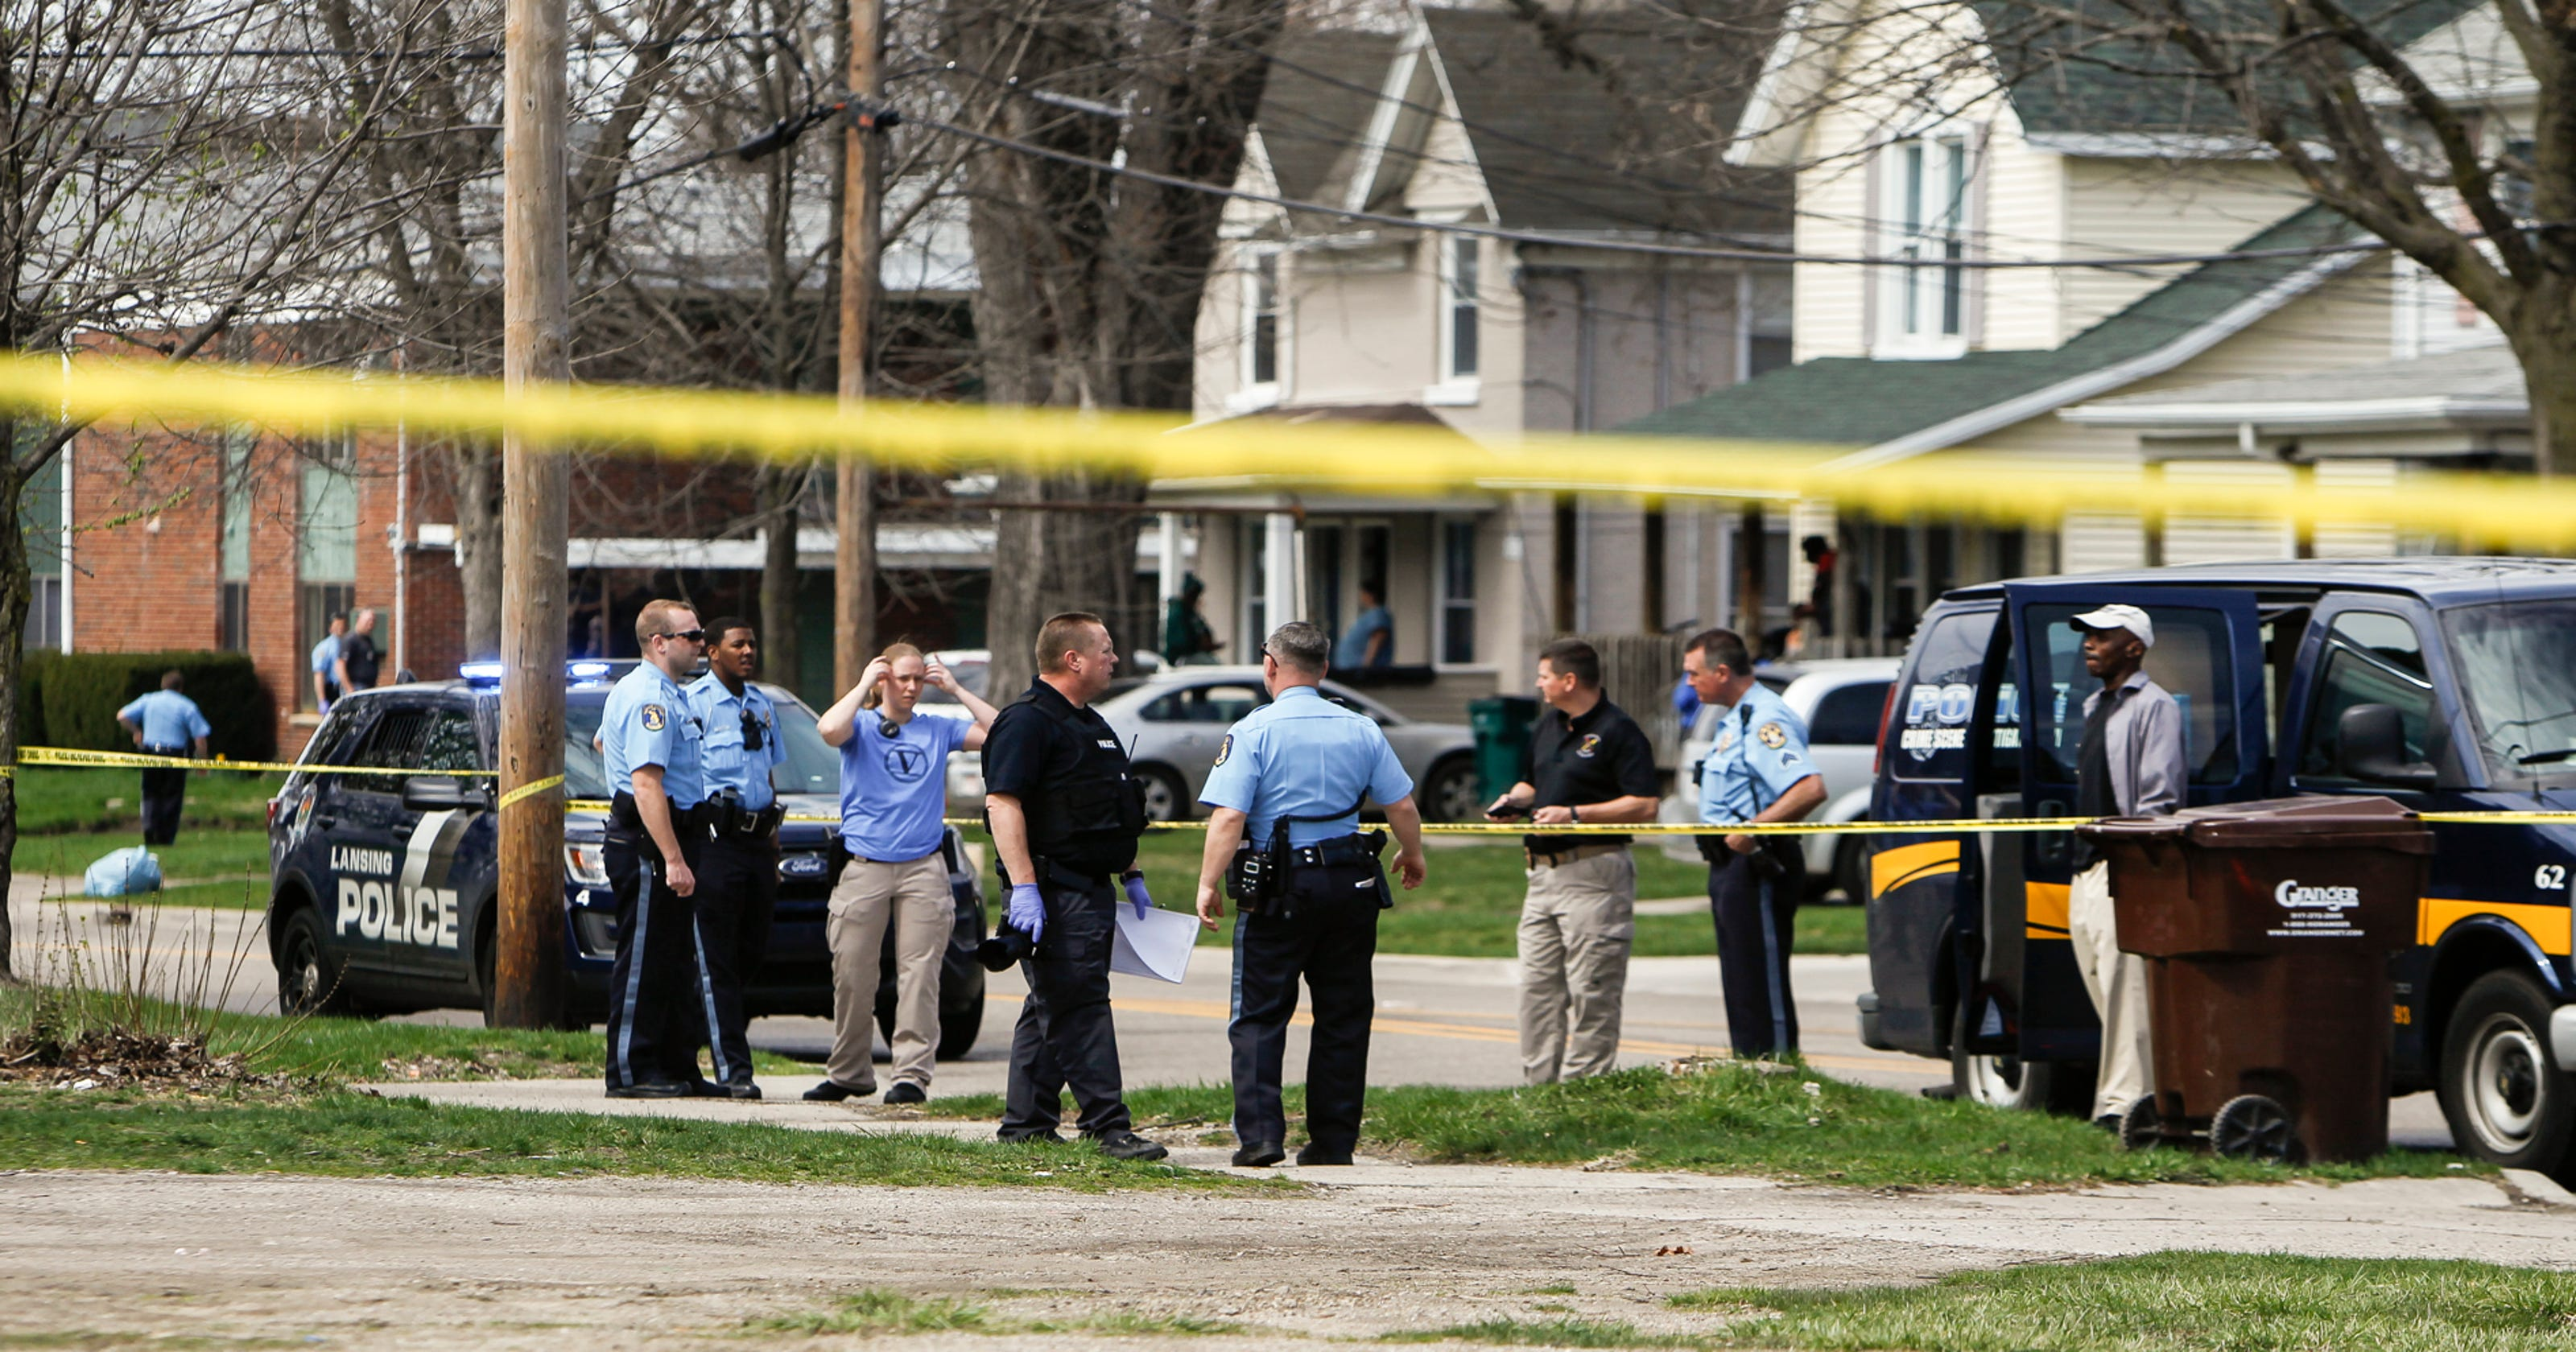 Lansing has 67 cold case homicides since 1963